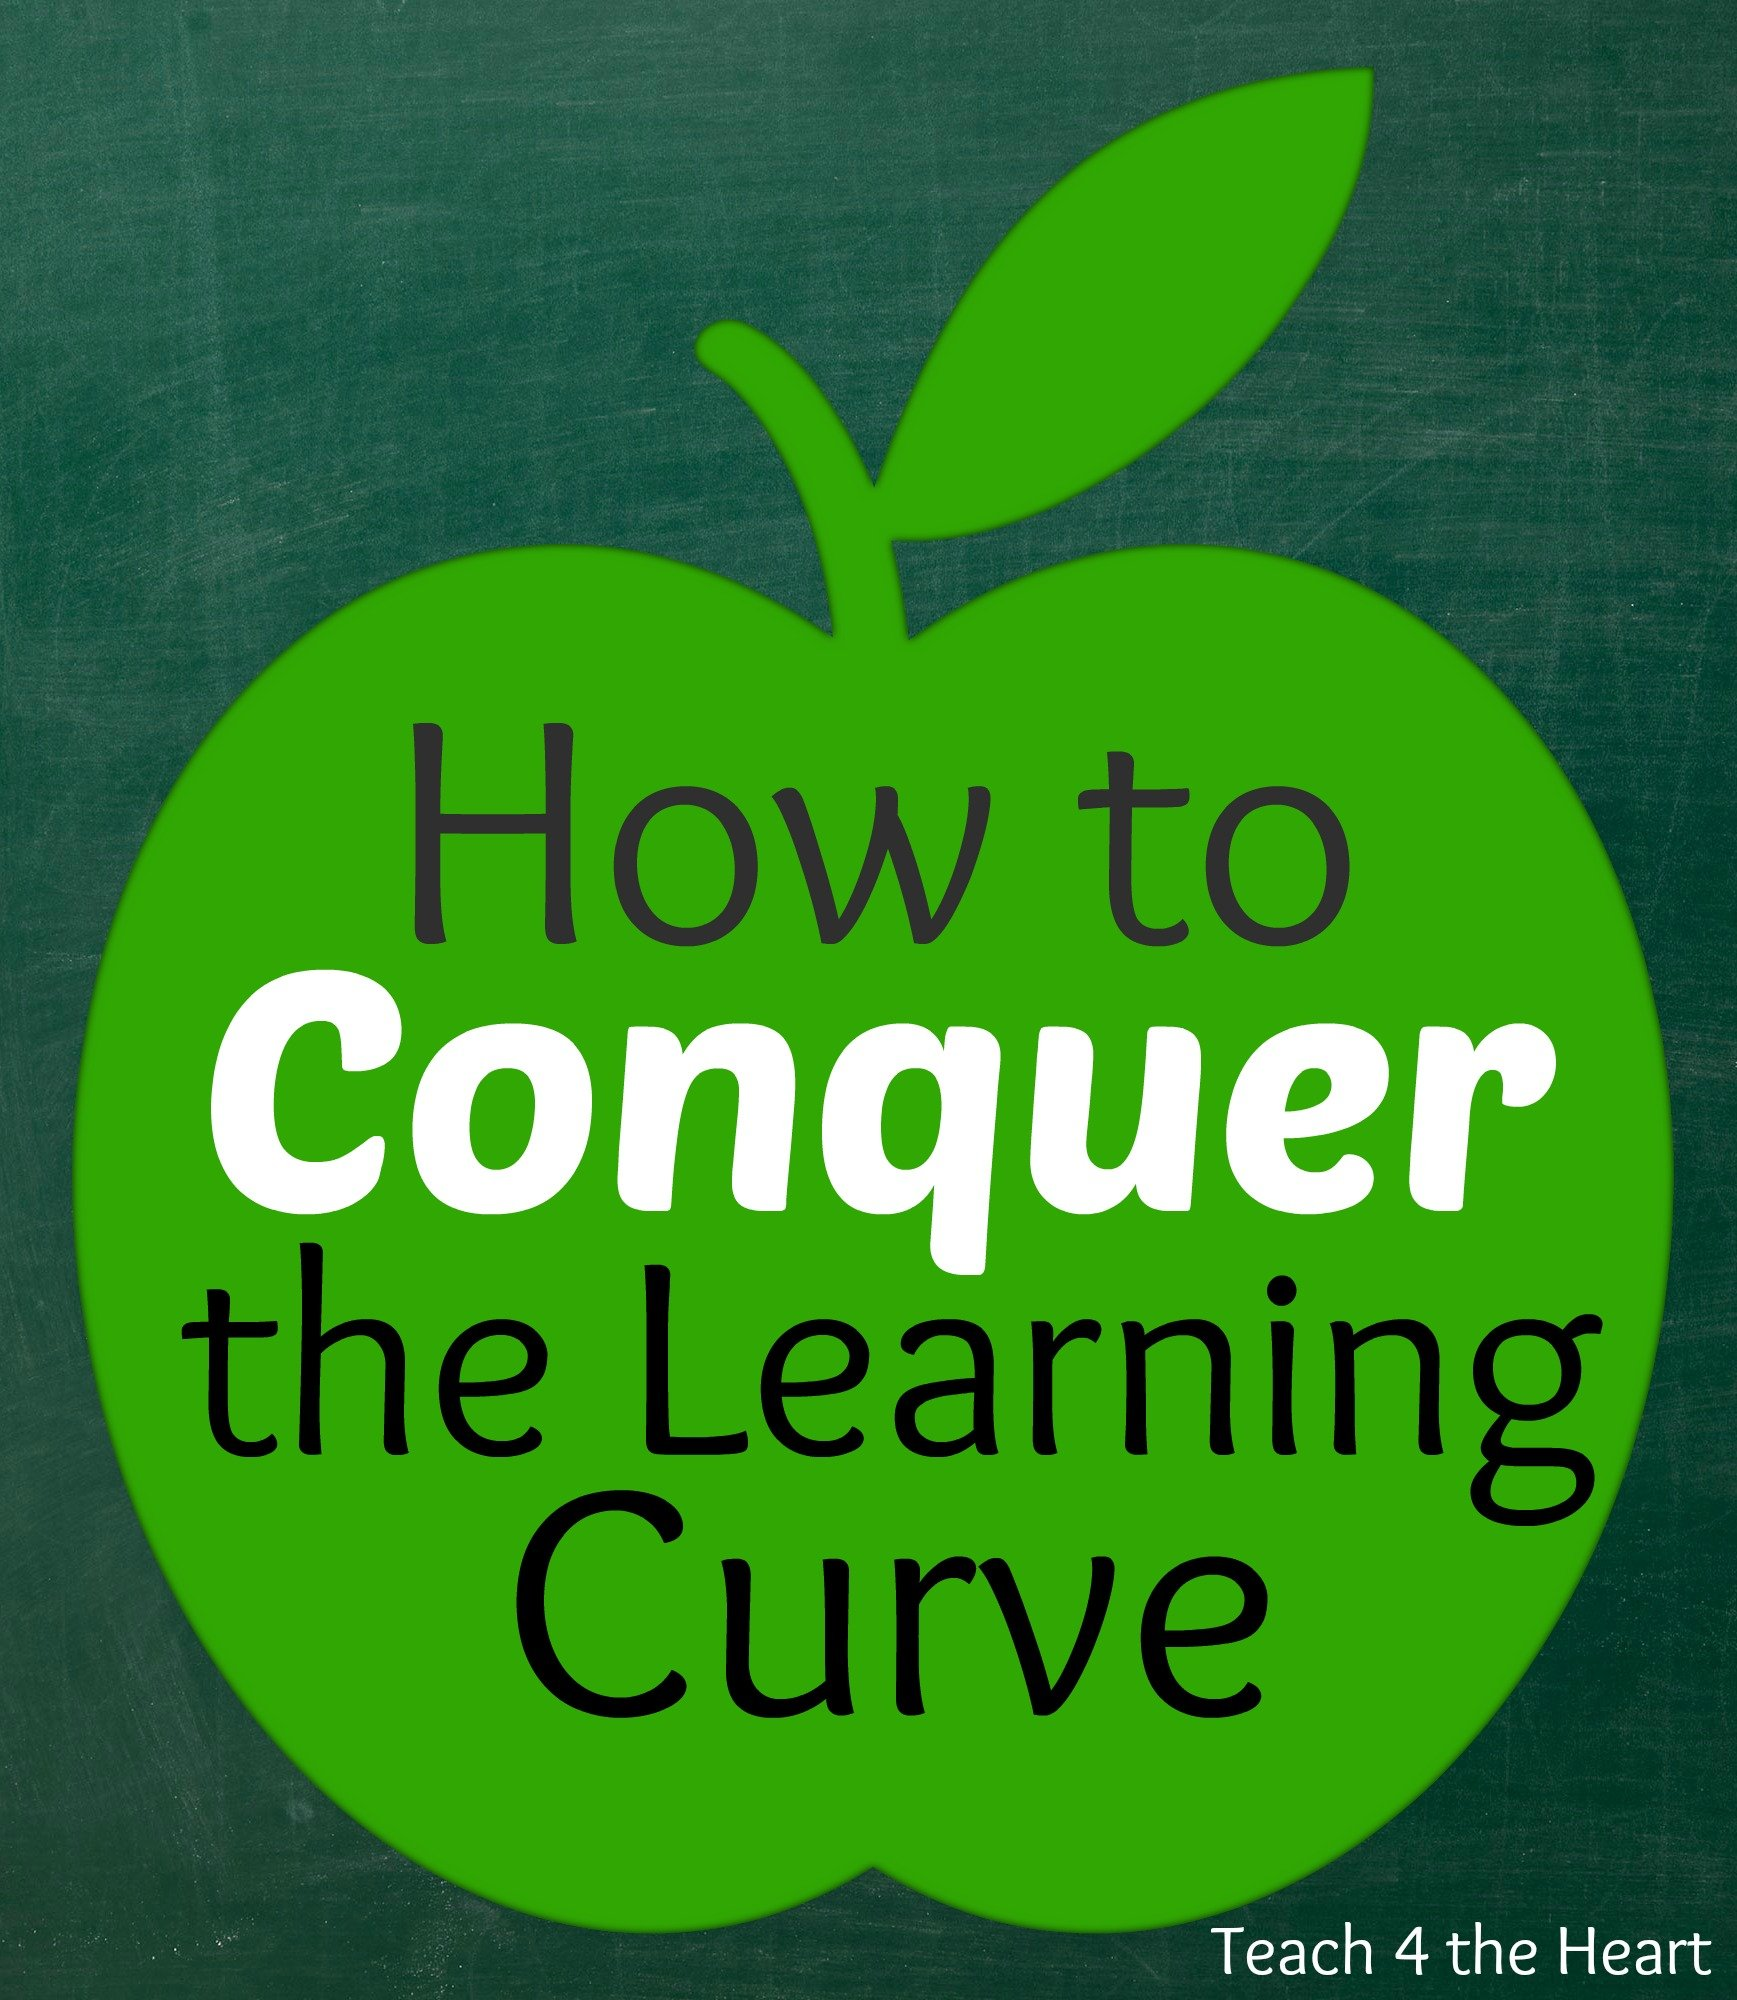 How to Conquer the Learning Curve of Teaching